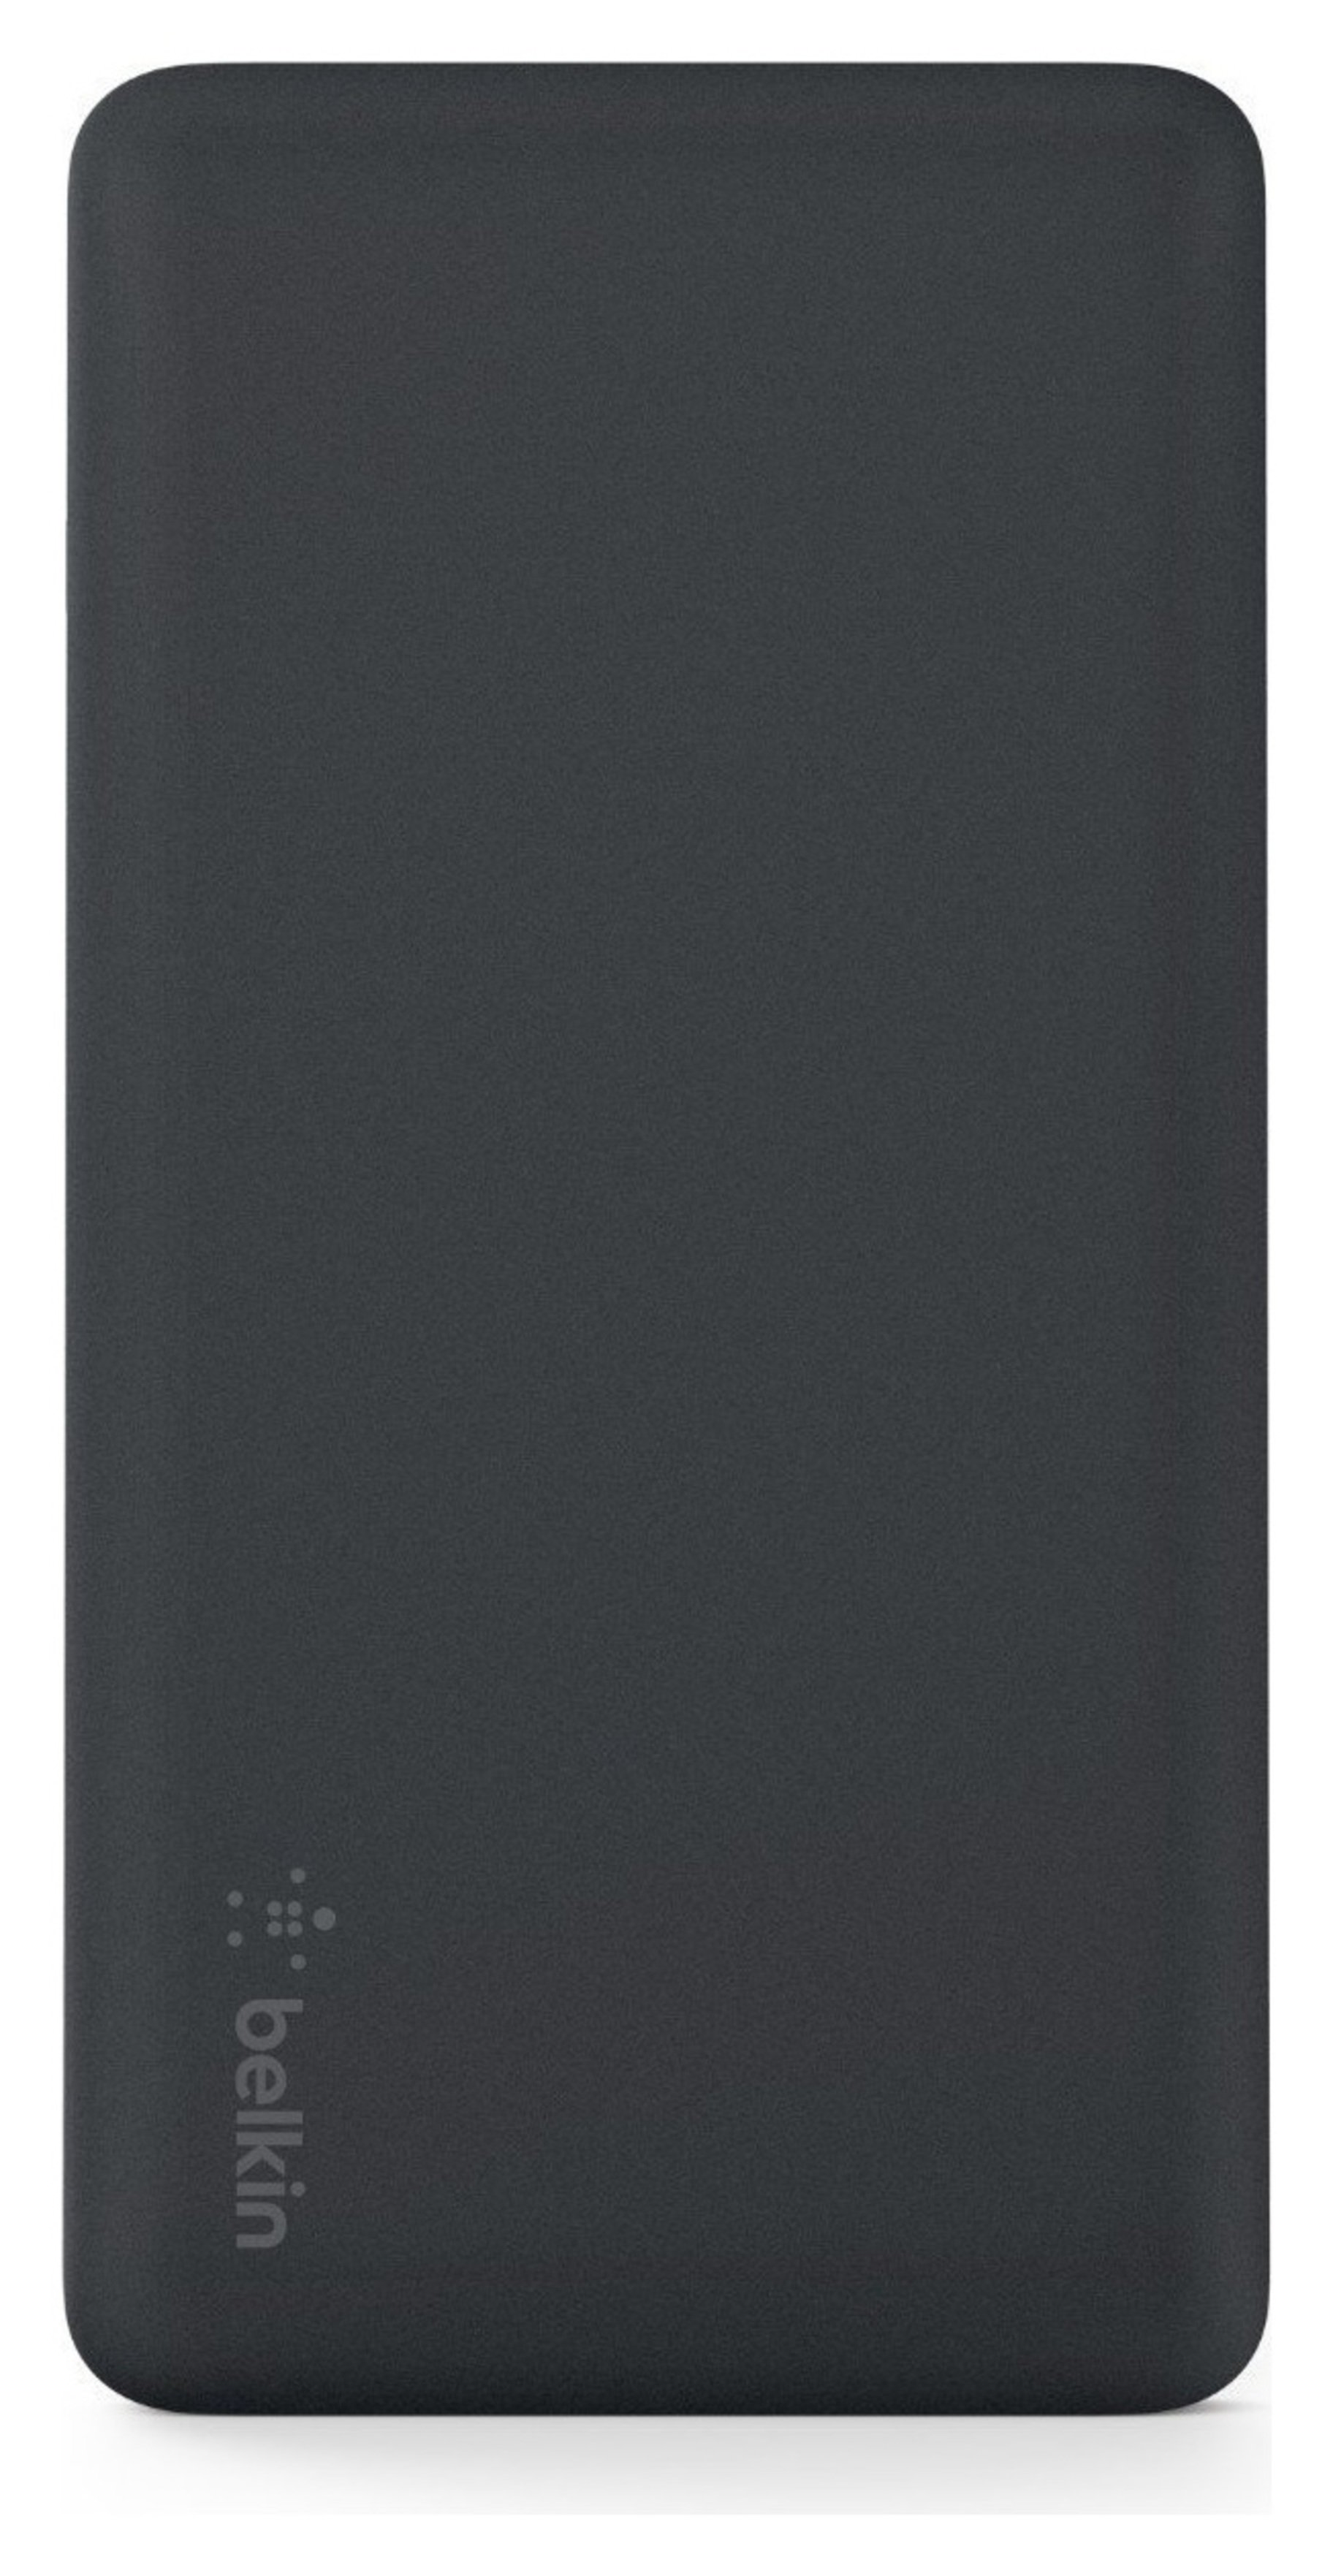 Image of Belkin 5000mAh Power Bank - Black